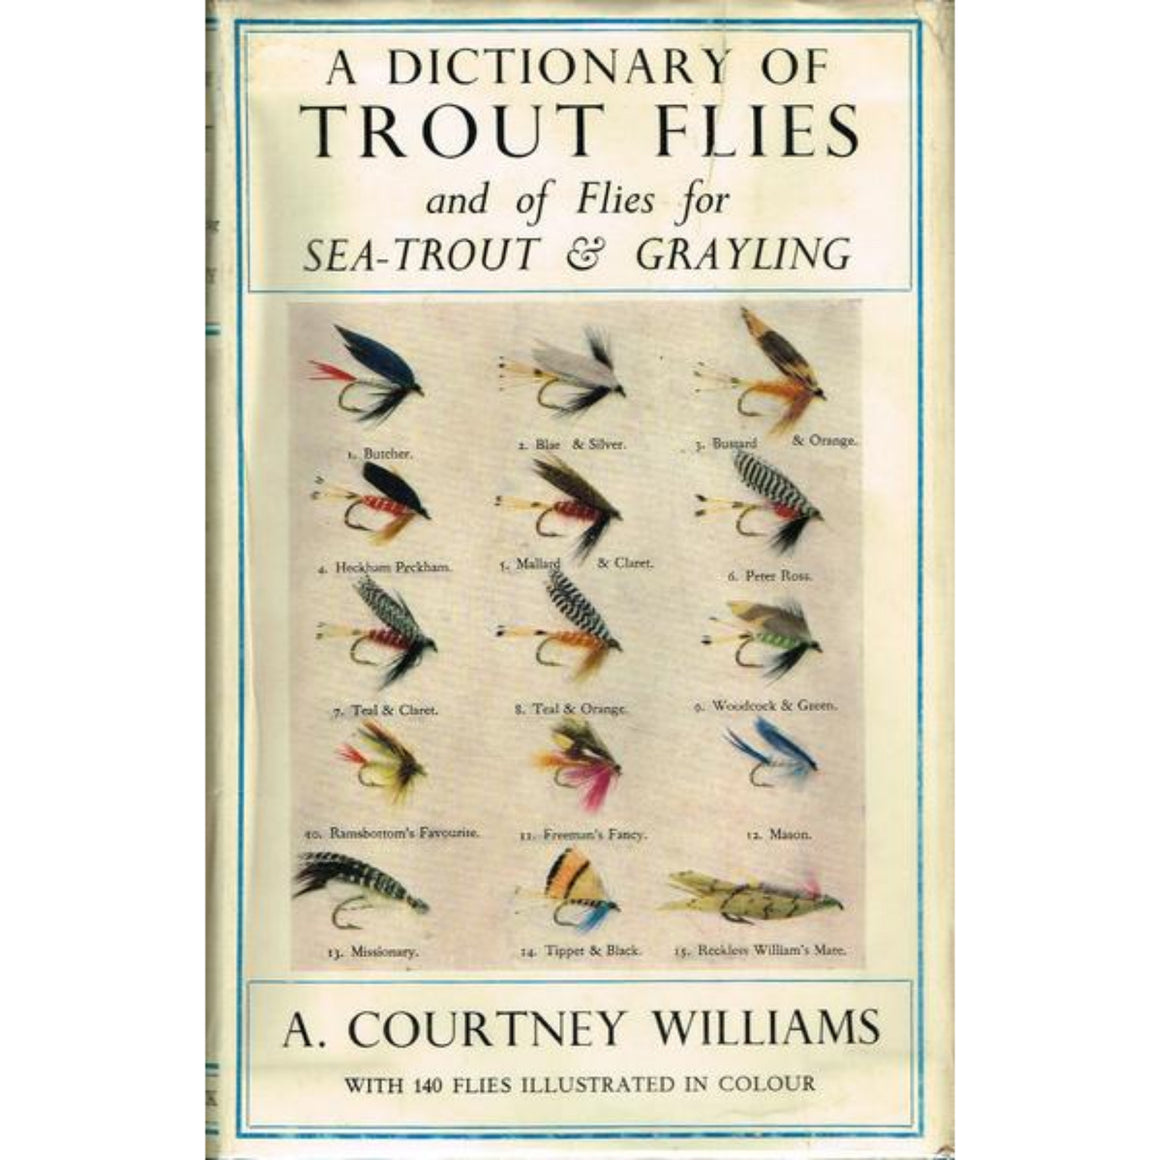 A Dictionary of Trout Flies and of Flies for Sea-Trout & Grayling